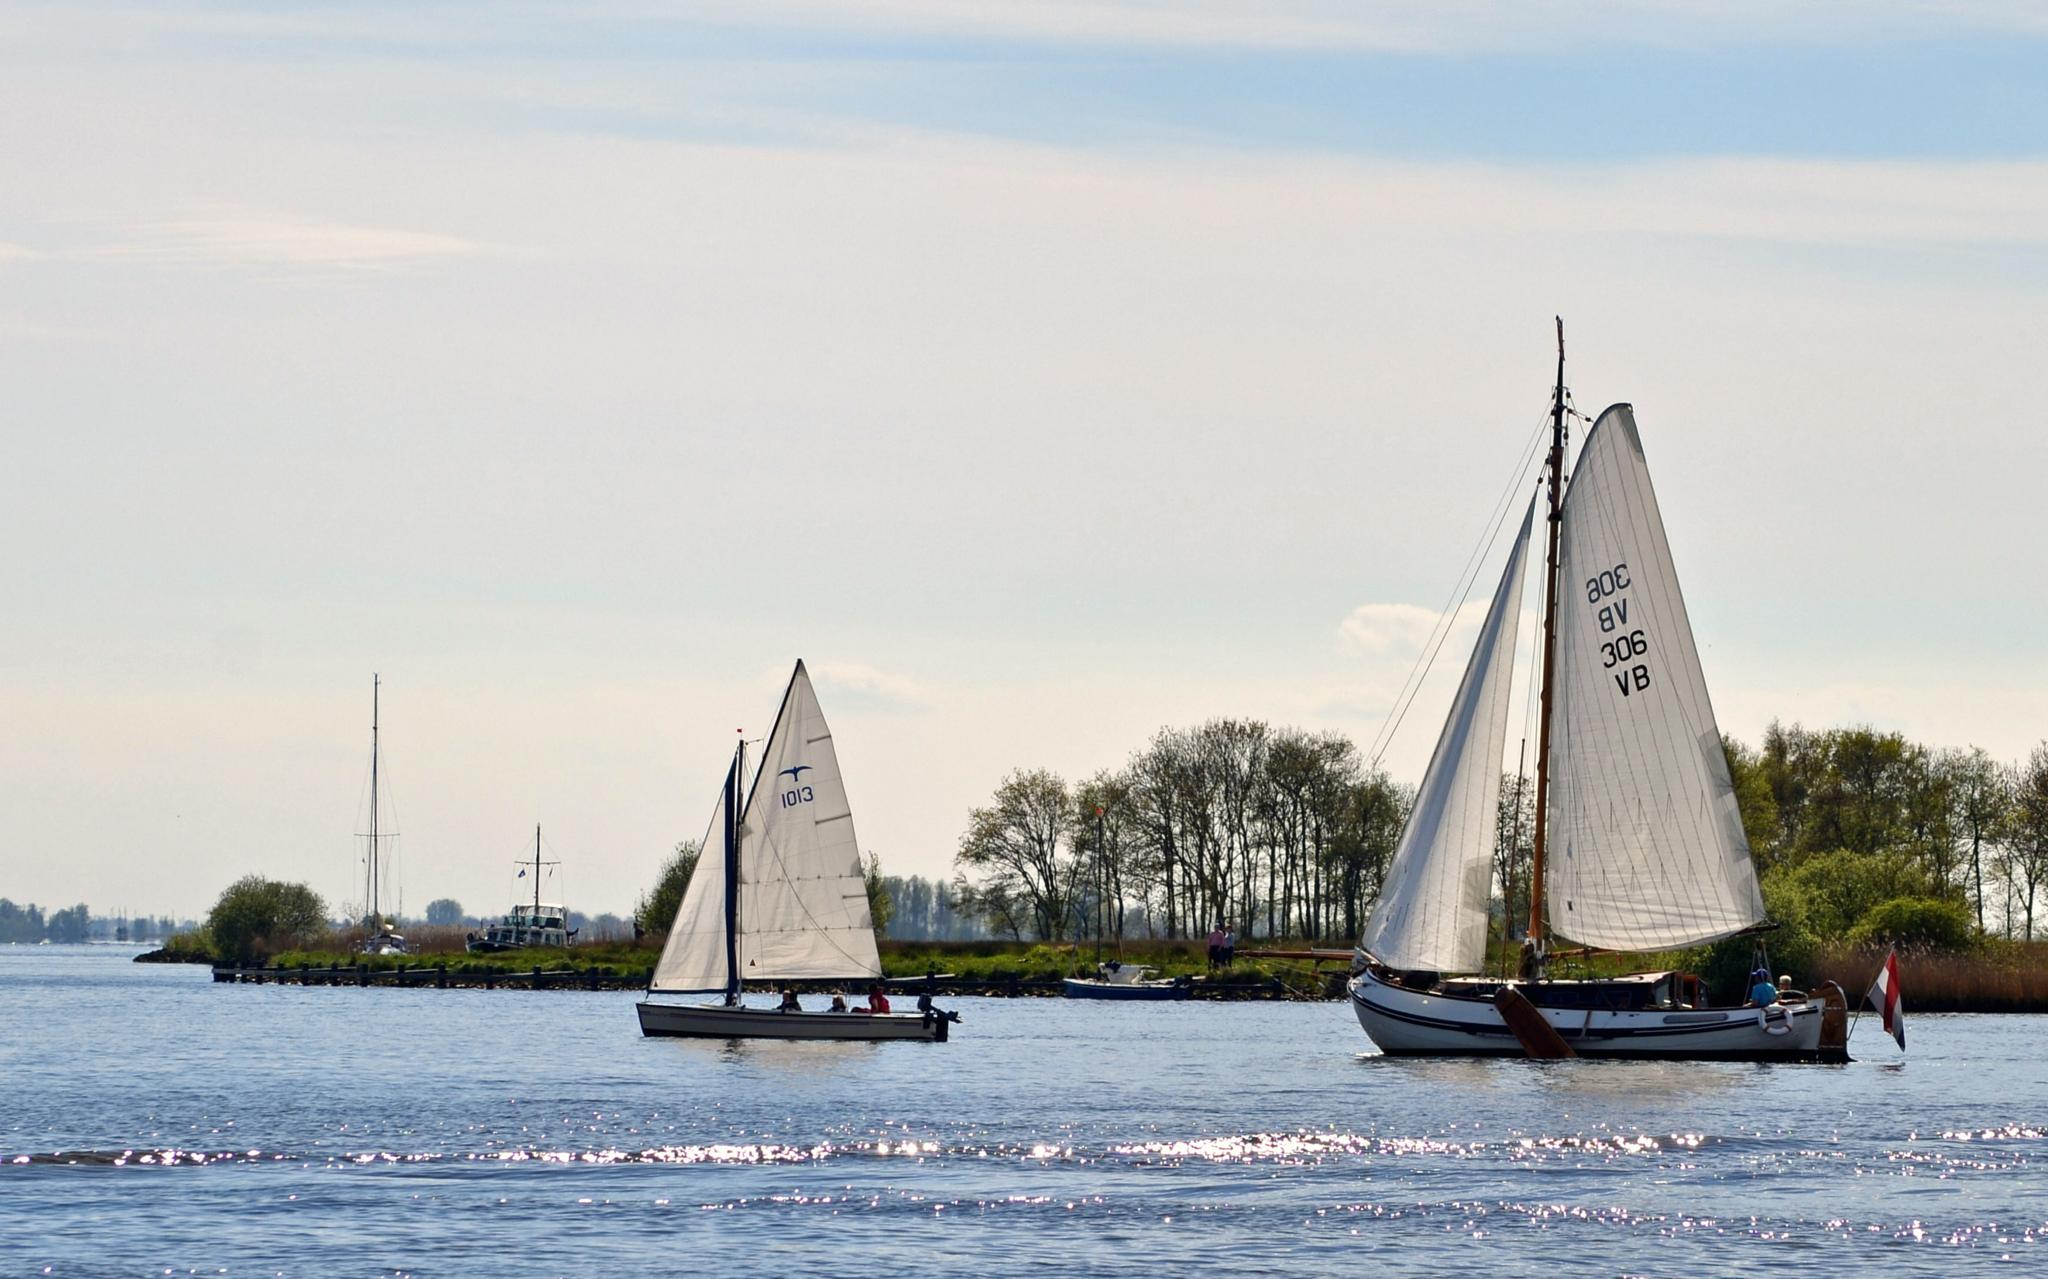 sunny day for sailing by leendert.terpstra